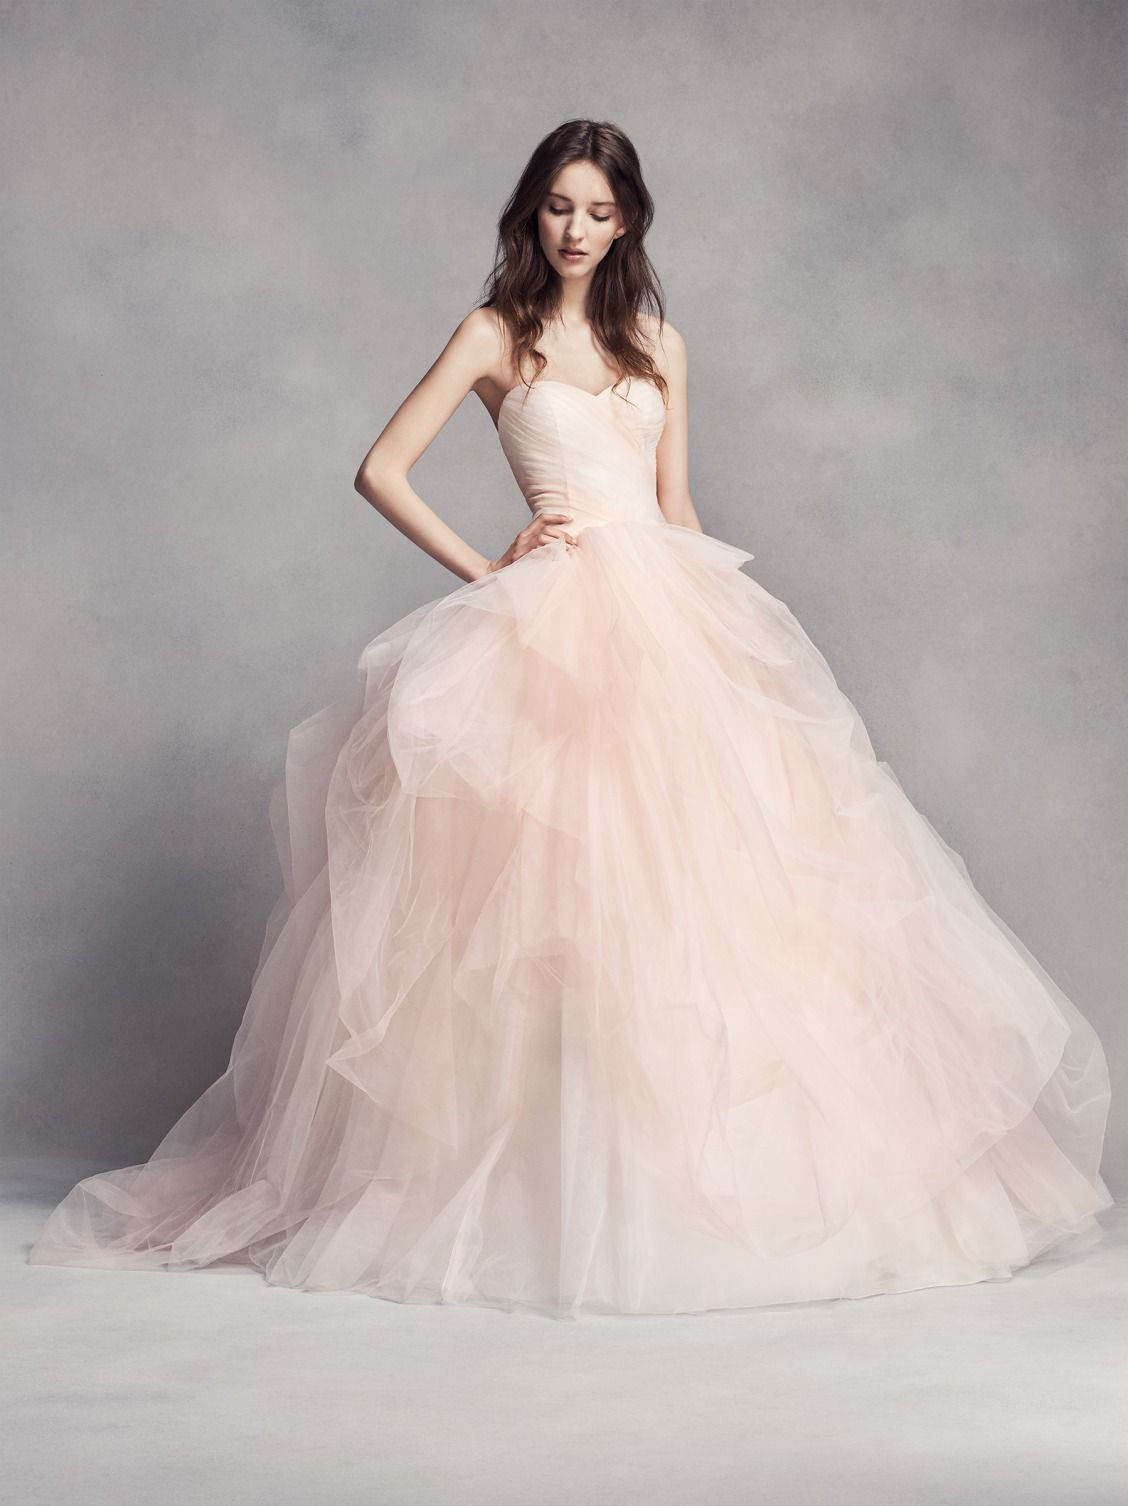 Pretty In Pink Wedding Dress This White By Vera Strapless Sweetheart Neckline Ball Gown Features Ombré Tulle For A Bridal Look That S